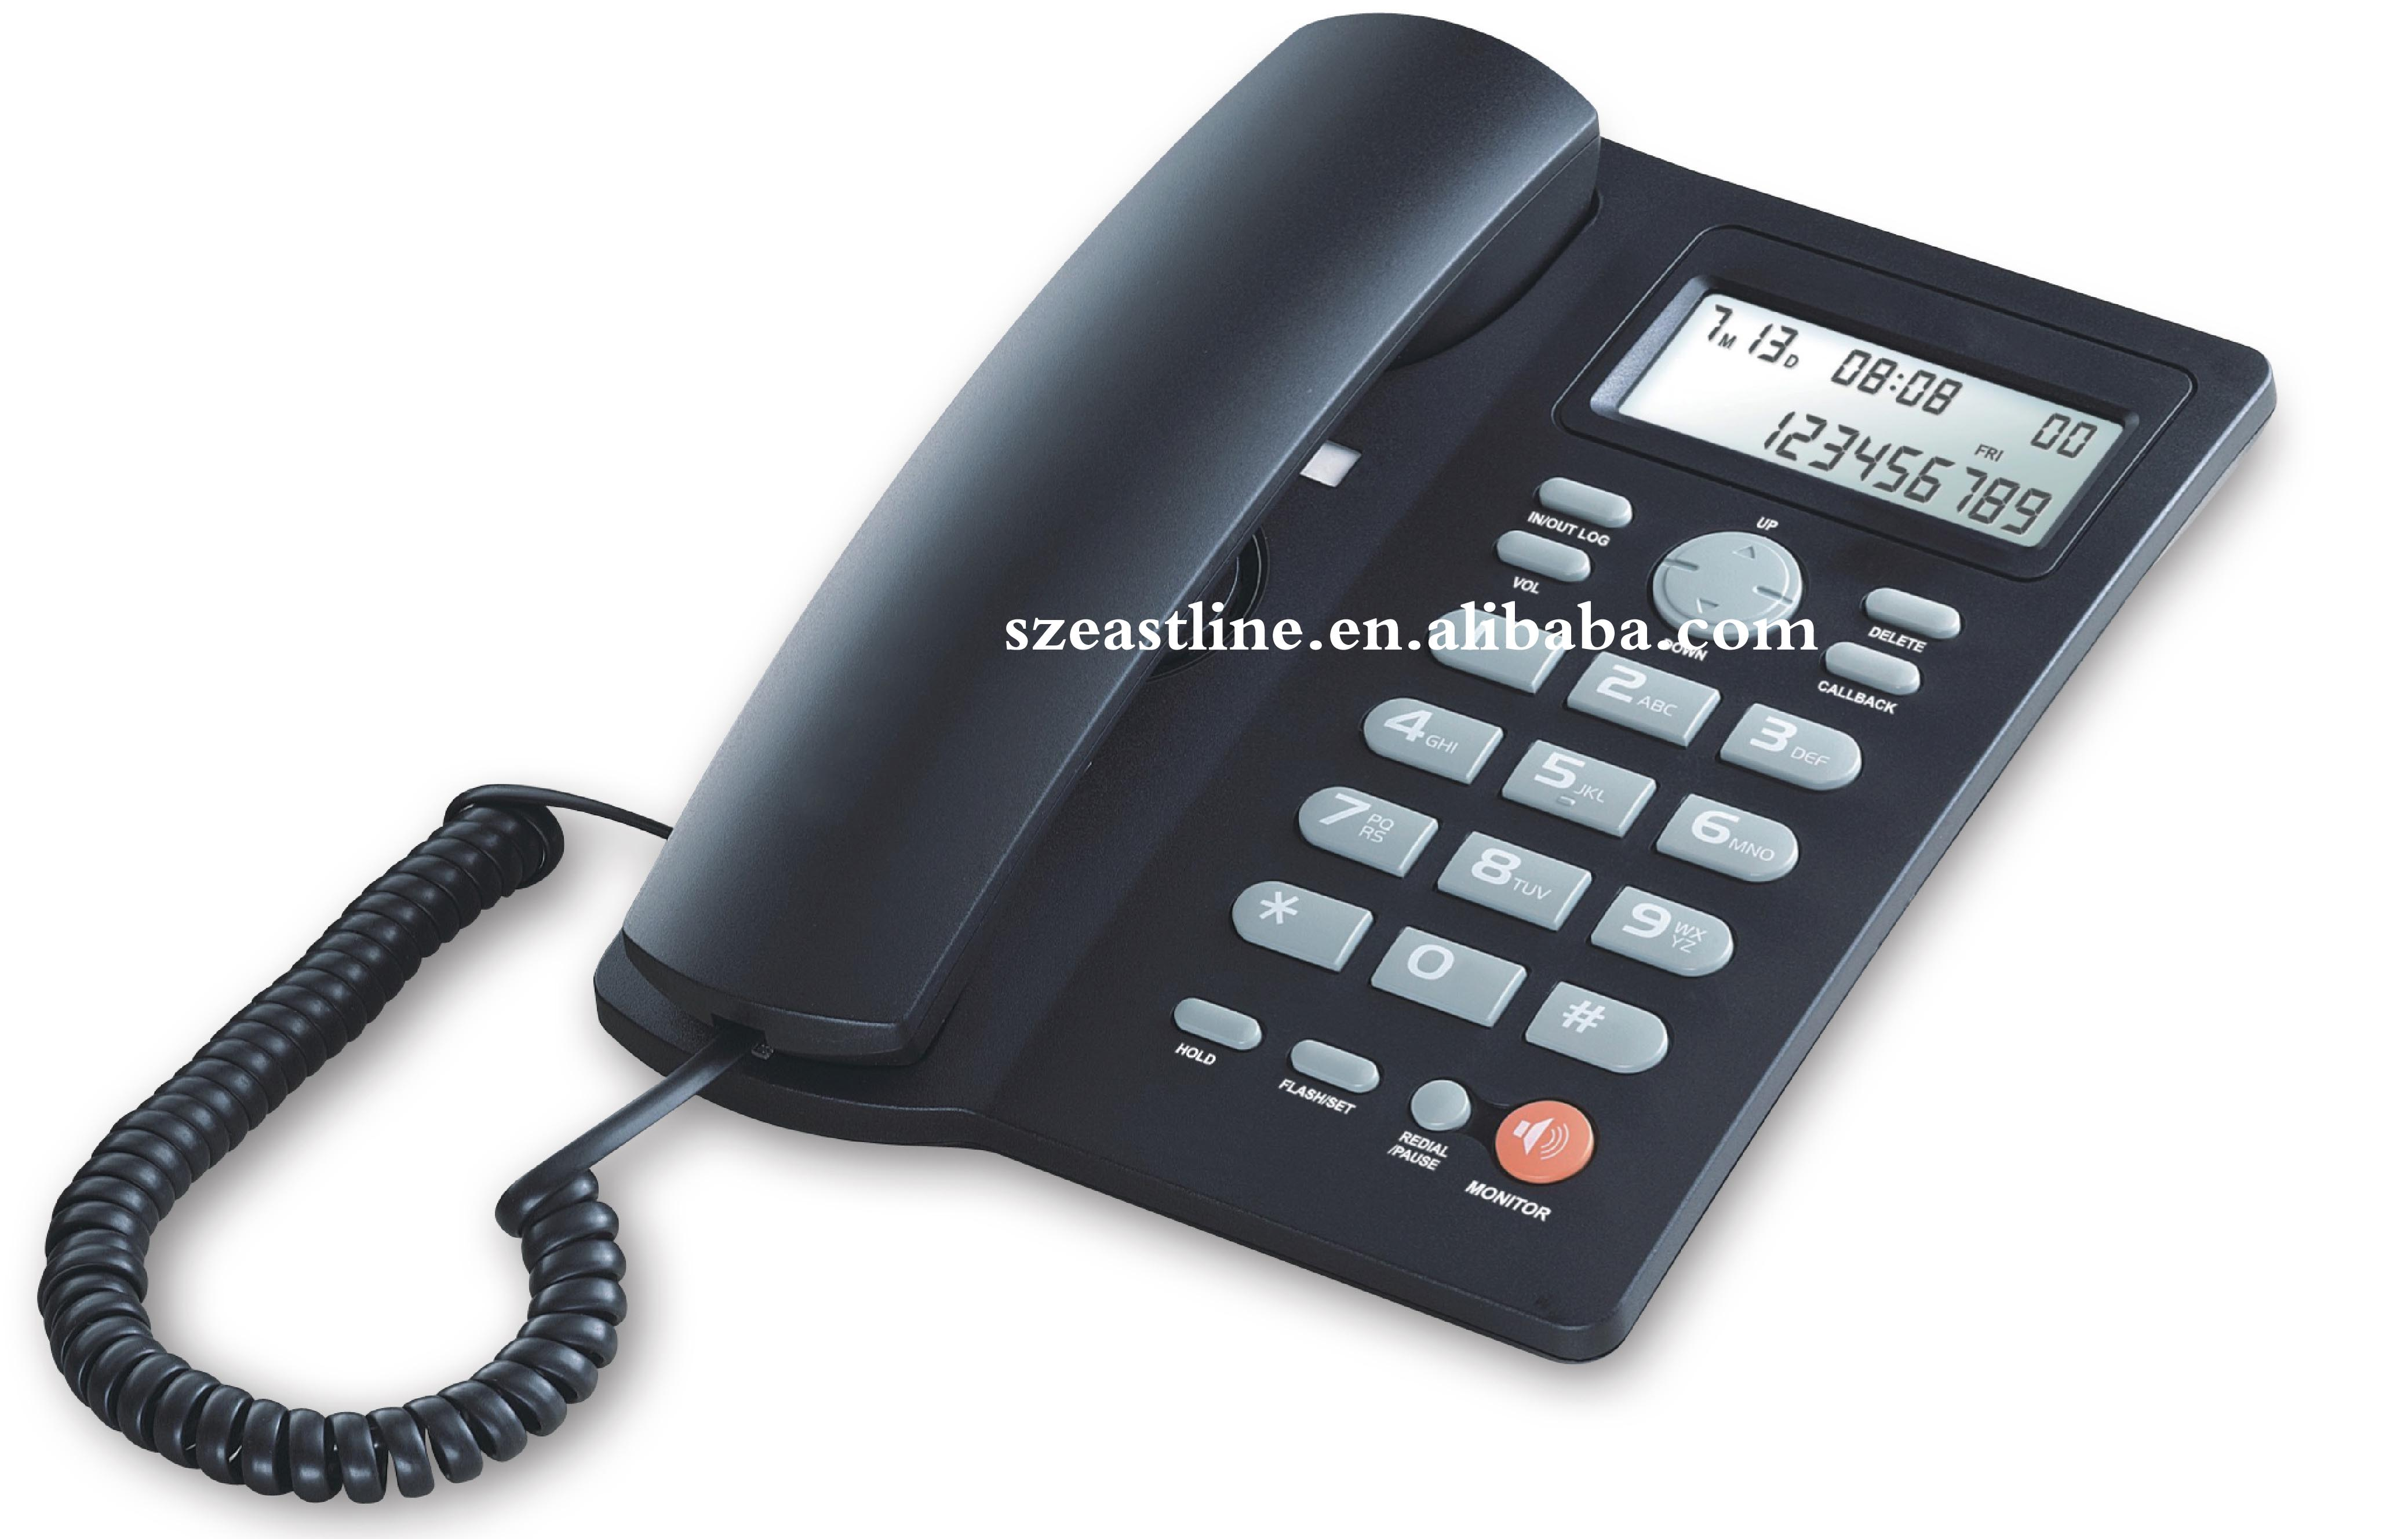 Two-way H.F. Speakerphone Caller ID Corded / Analog Telephone Set with Toggle Mute